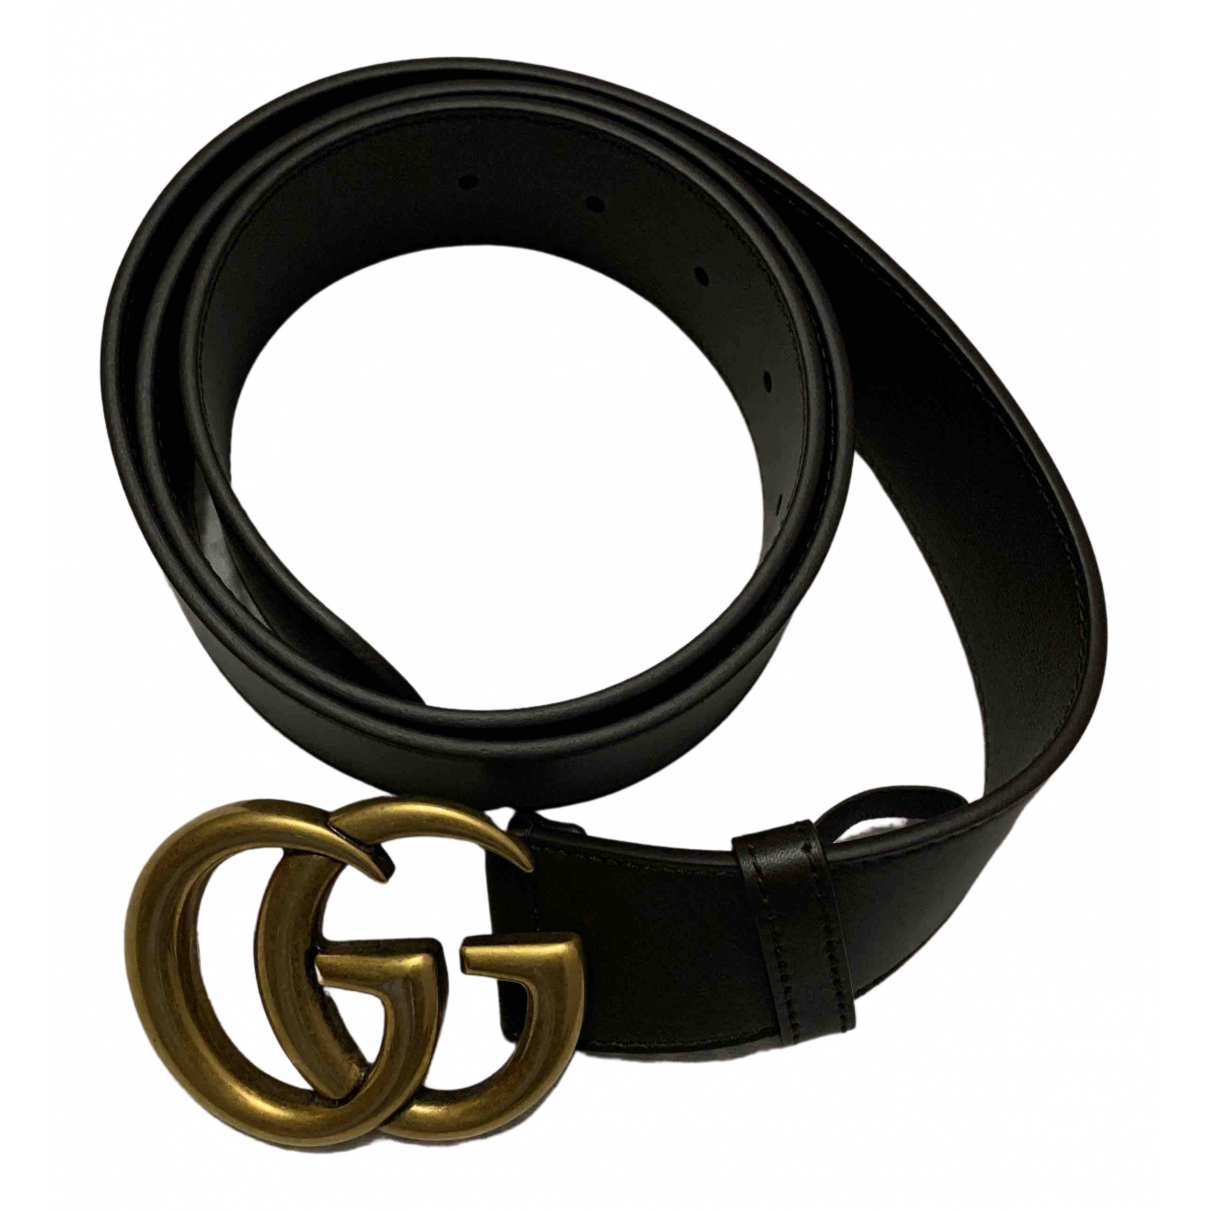 Gucci GG Buckle Brown Leather belt for Men 100 cm